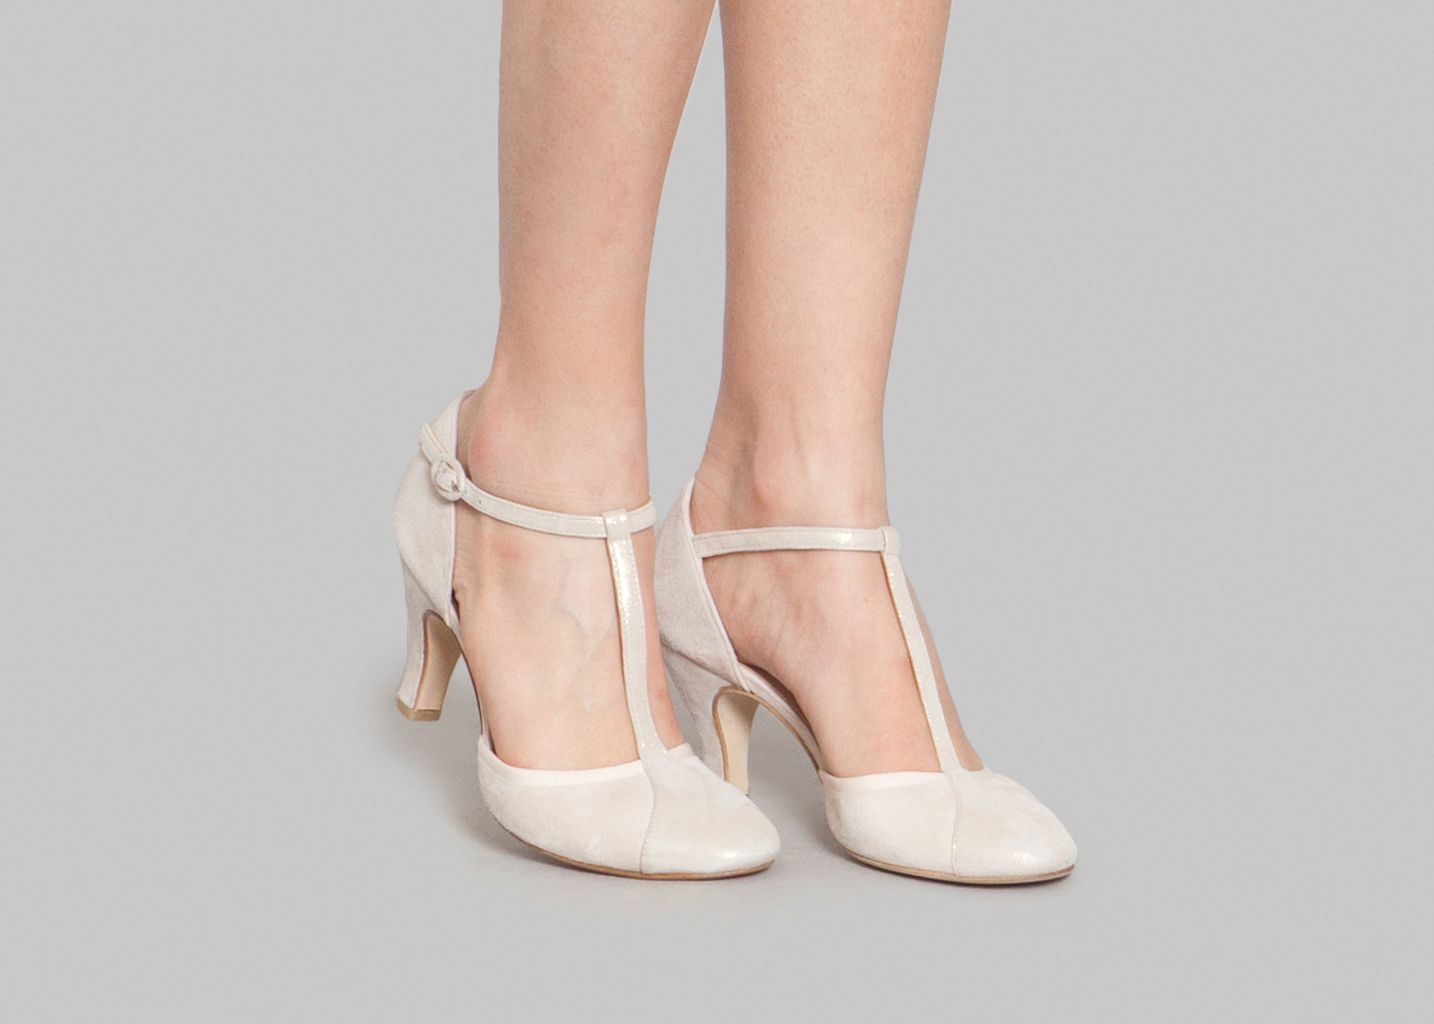 353cb5baa3c Salomé Baya - Repetto Repetto Chaussures